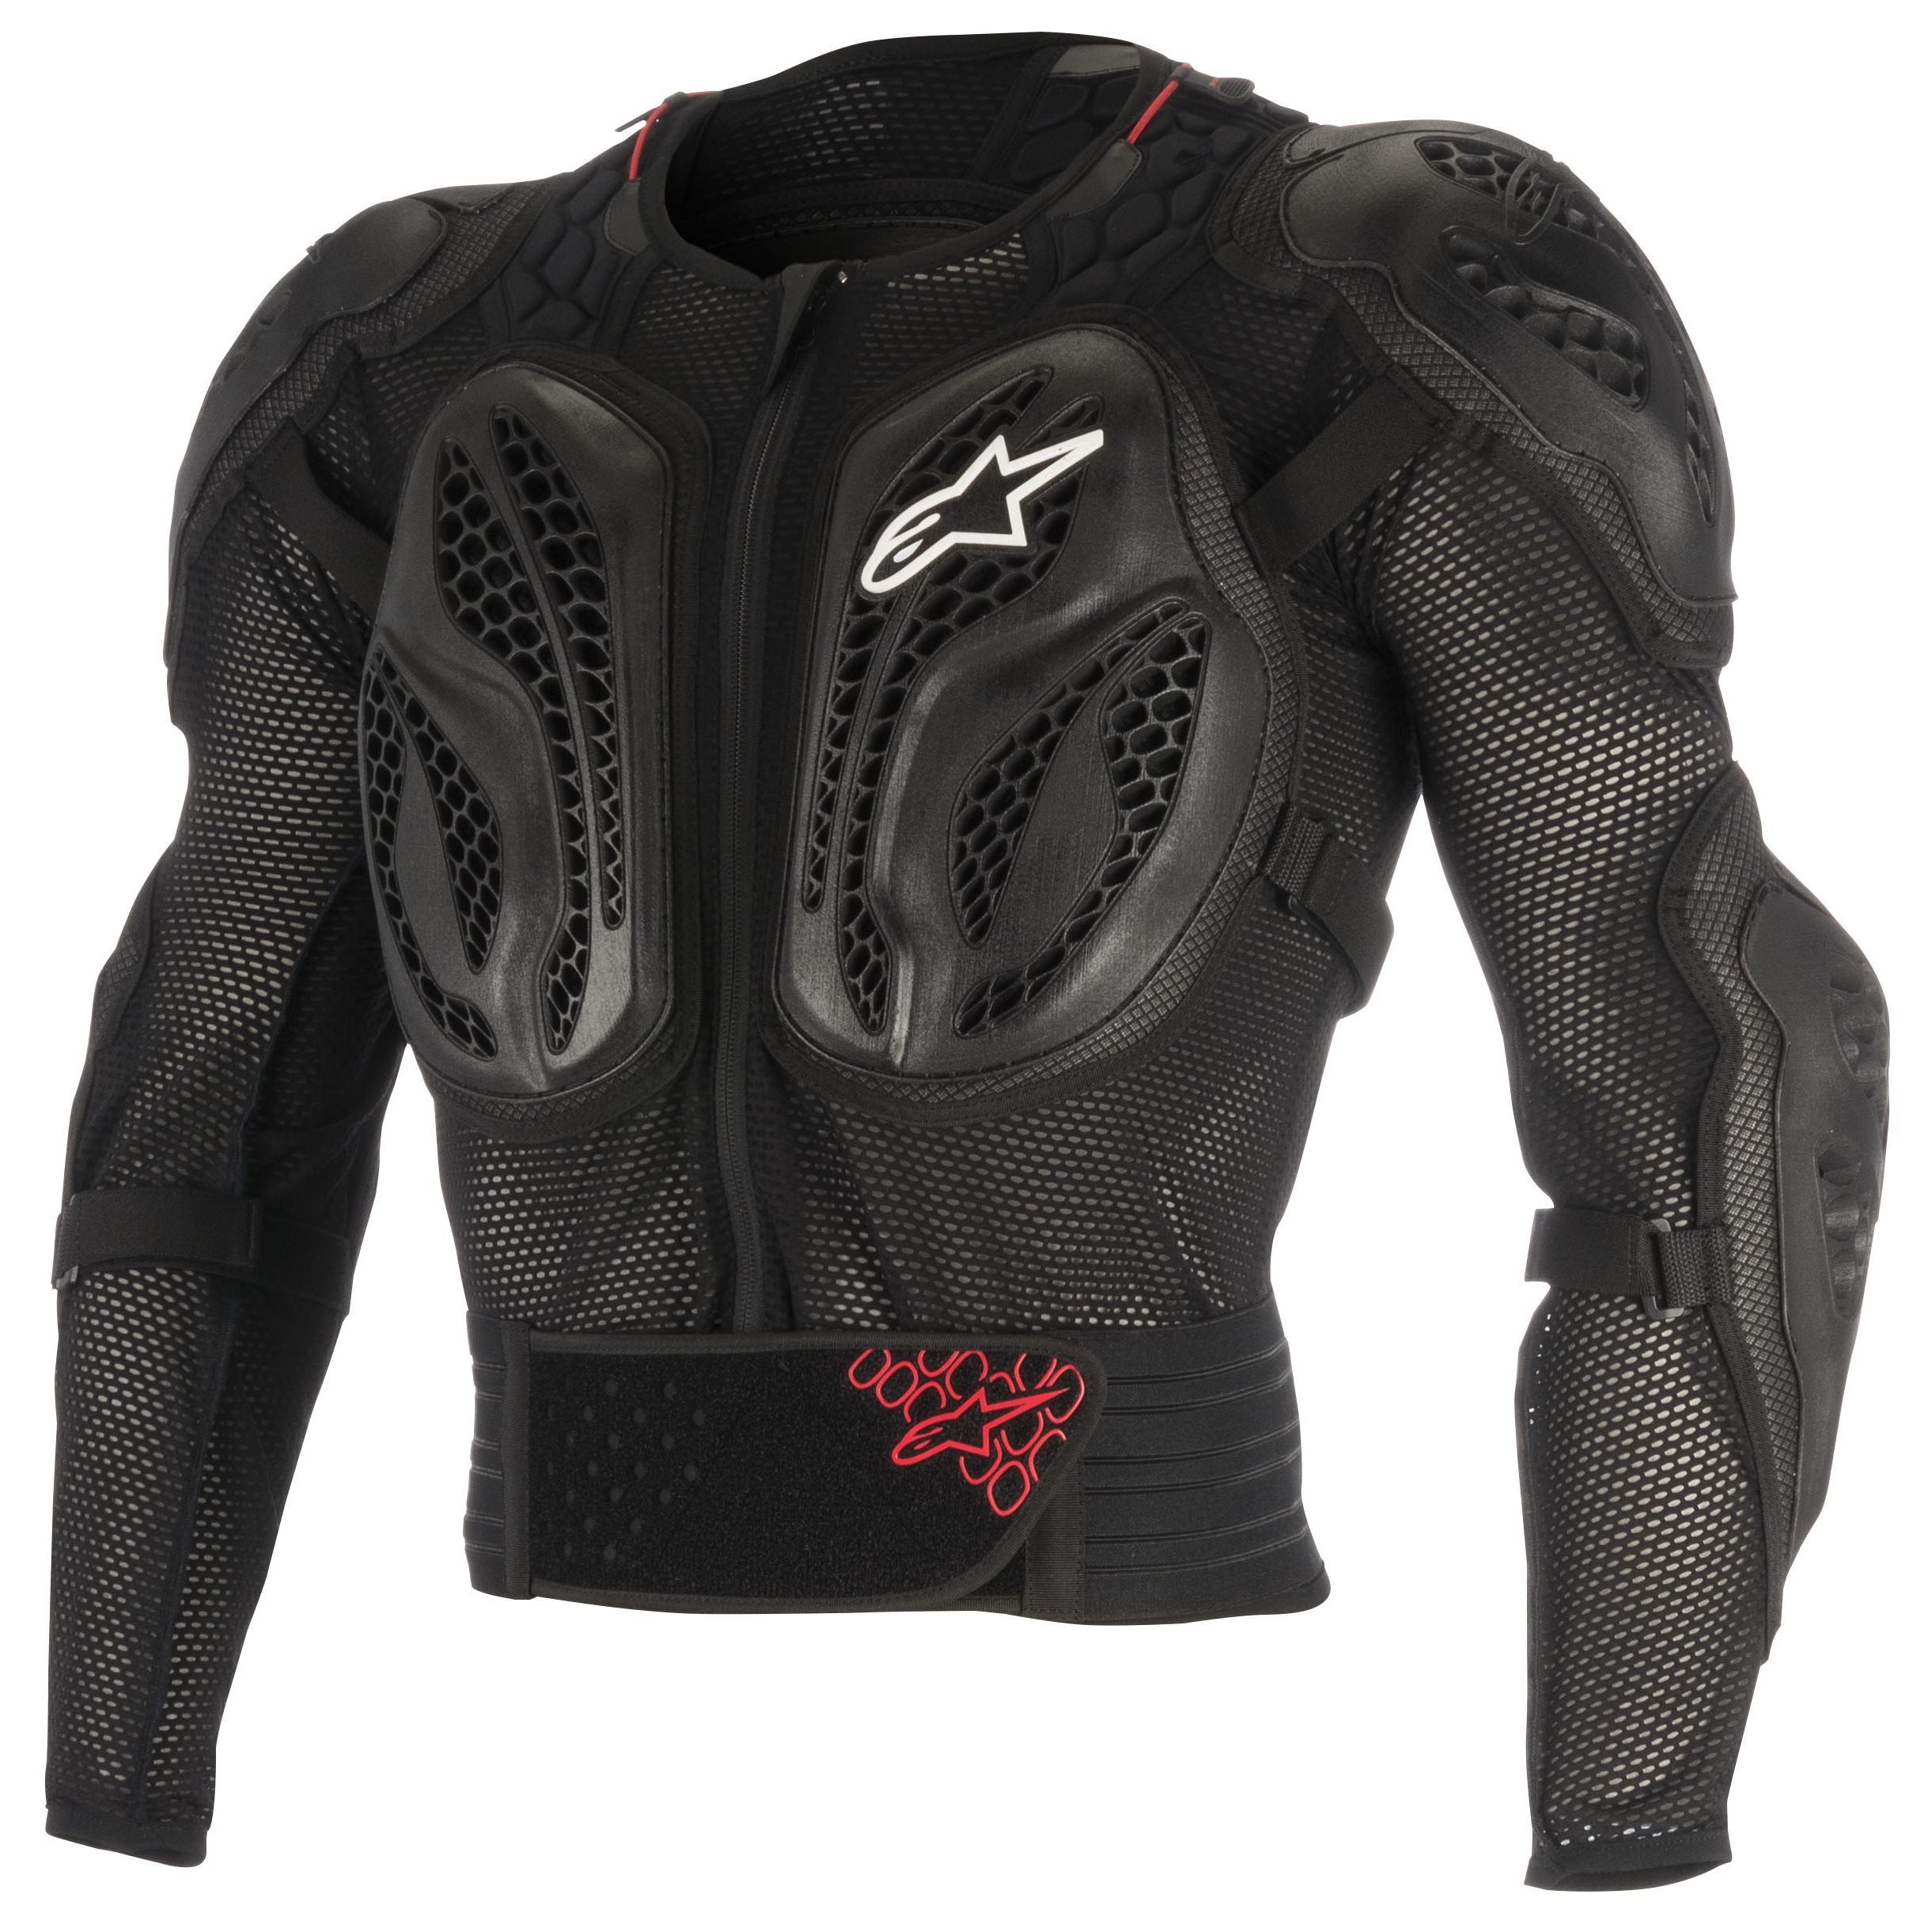 Gilet De Protection Alpinestars Bionic Action Sasie